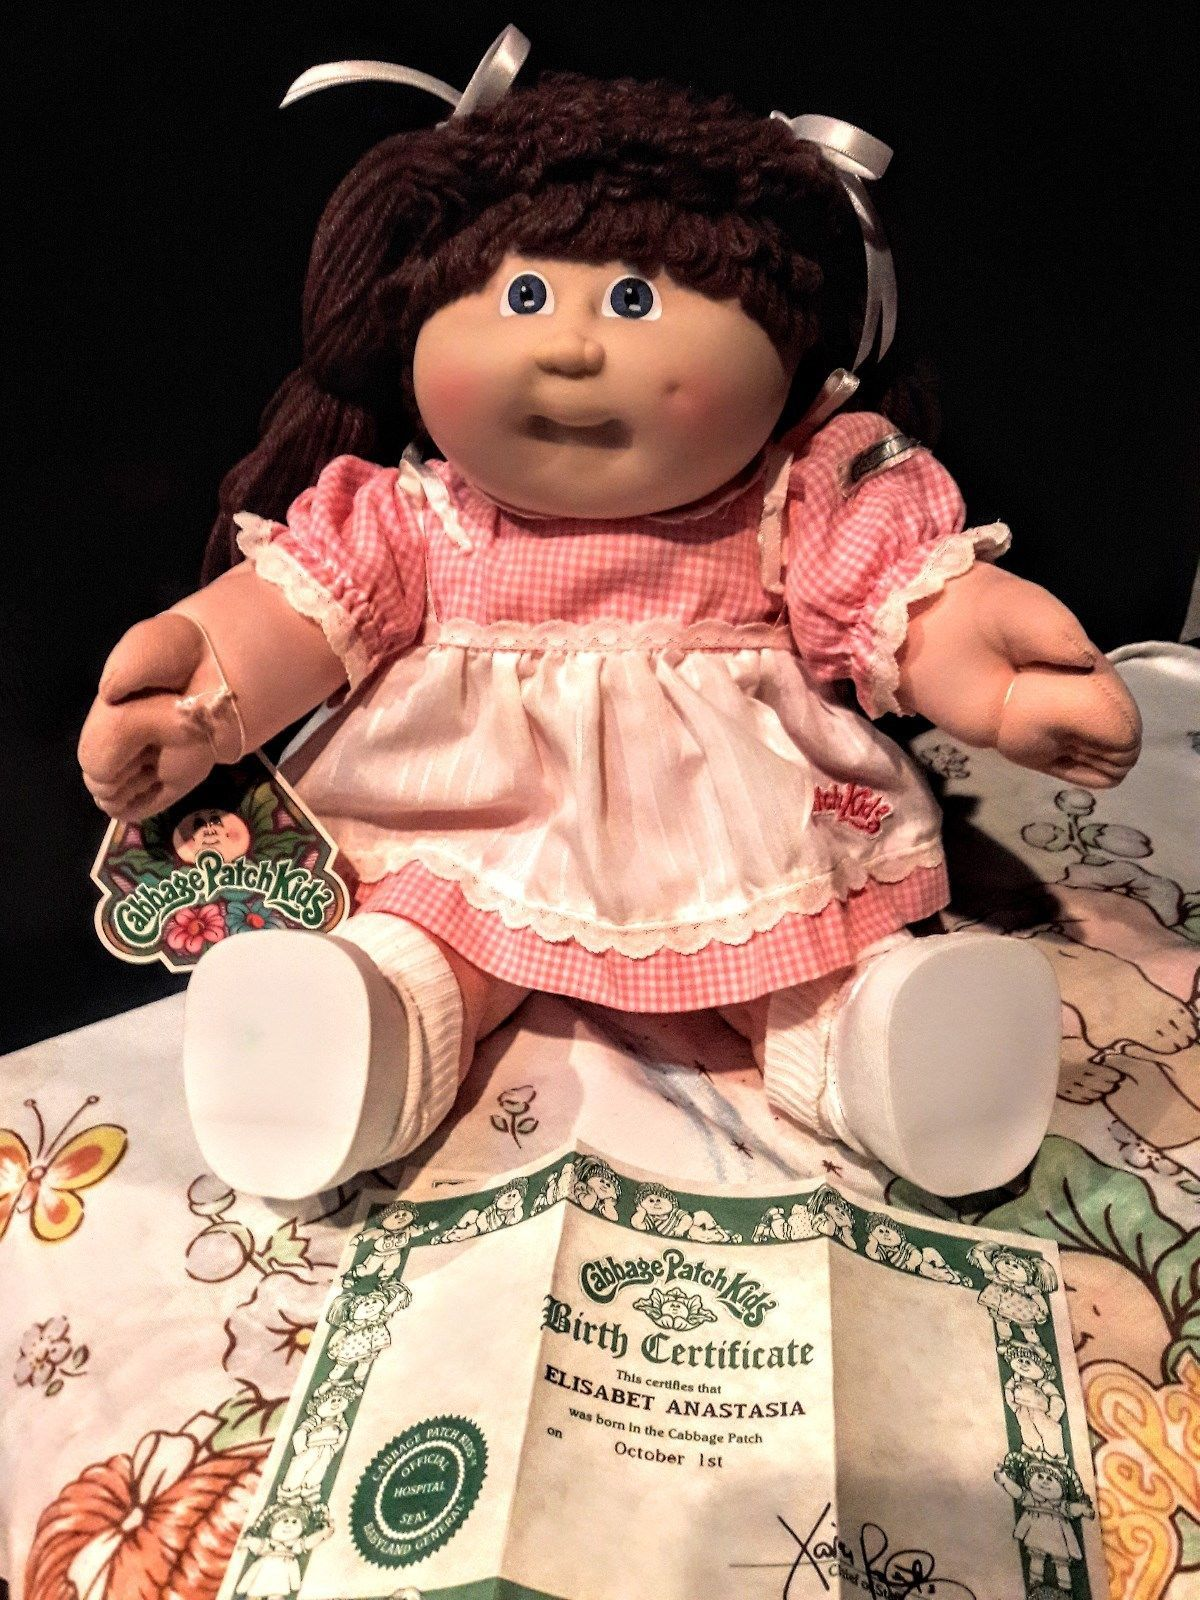 1985 Vintage Cabbage Patch Kids Girl Hm 3 Ic3 Factory Rare Pink Country Dress Cabbage Patch Kids Rare Pink Kids Girls